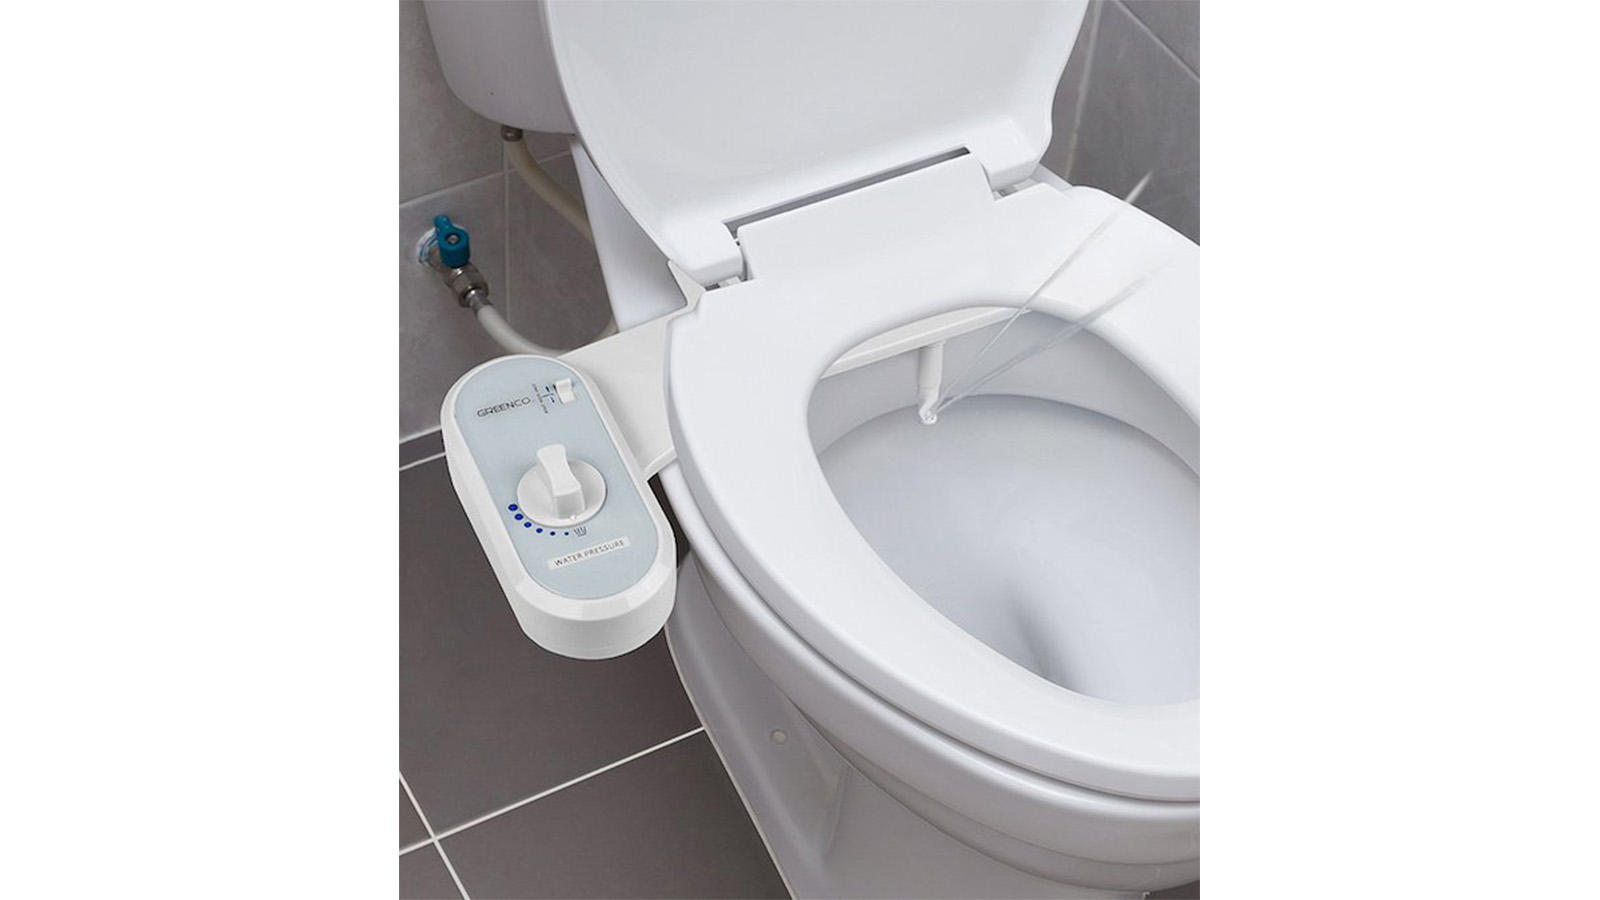 Bidet toilet seat attachment